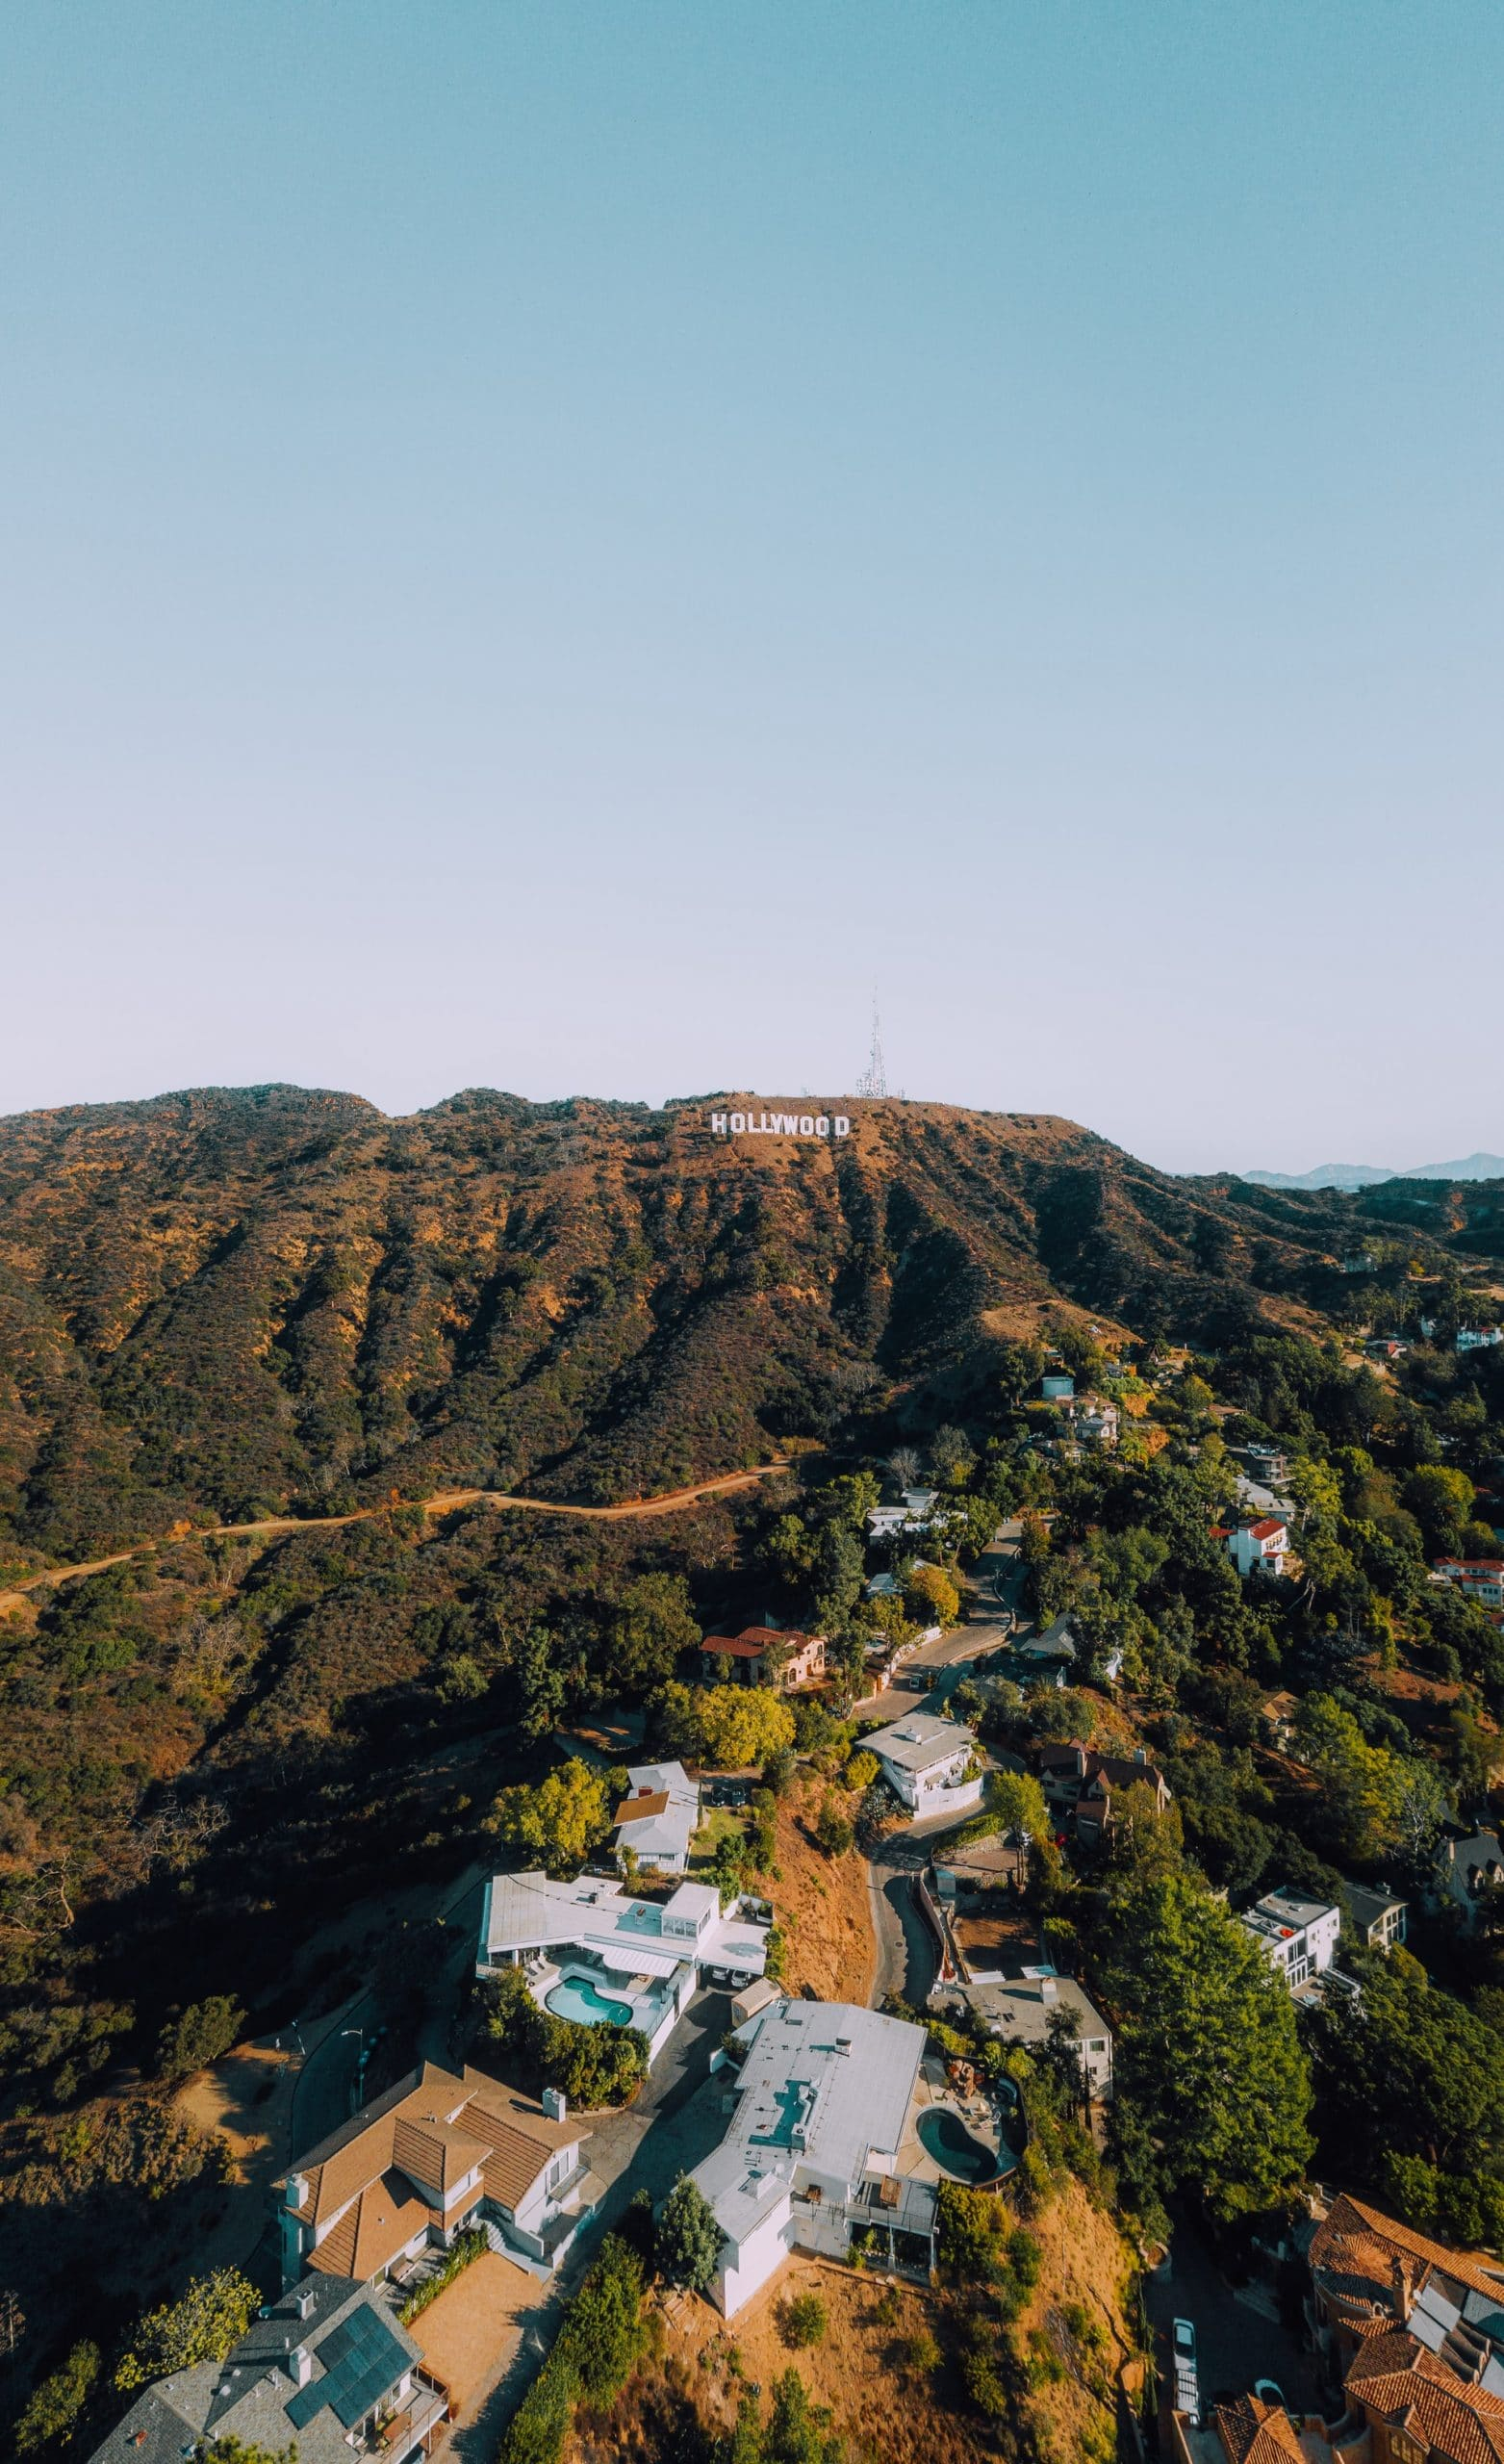 Season 1 | Episode 8: Kelly Watkins on what it's really like to be a Hollywood House Manager and work your way up the Private Household ladder